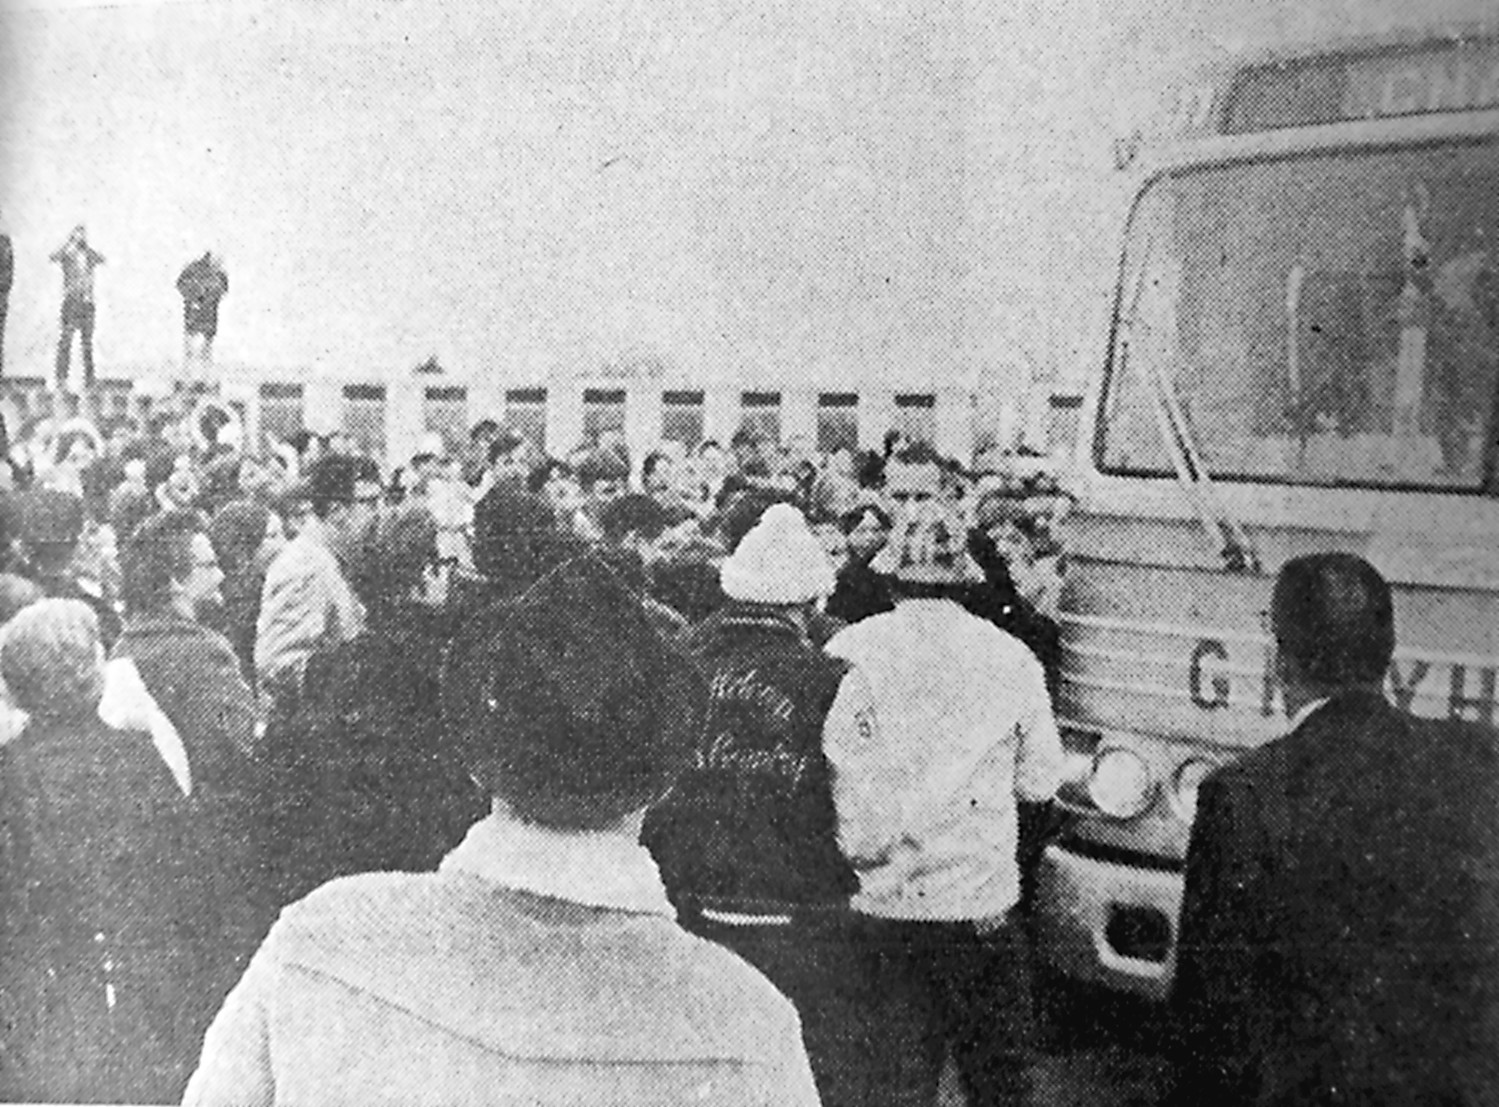 Here comes the bus and the happy players, coaches and school officials. The team arrived home at 3 p.m. Saturday, March 23, 1968, and were met by thousands of local people who turned out to honor the victors. The high school gym never housed such a crowd.